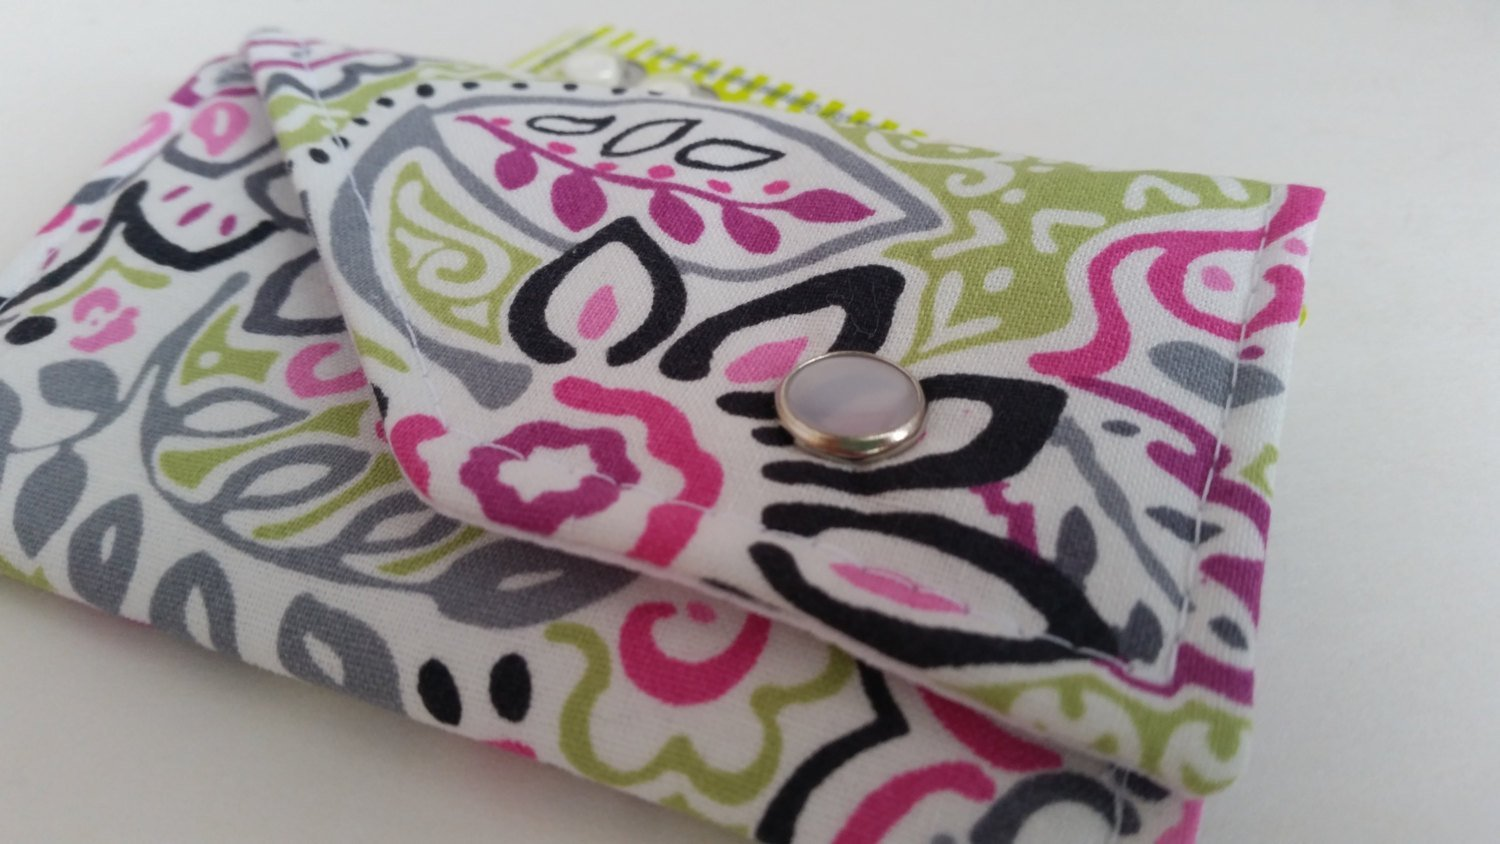 Birth Control Case Sleeve with Snap Closure - Pretty print